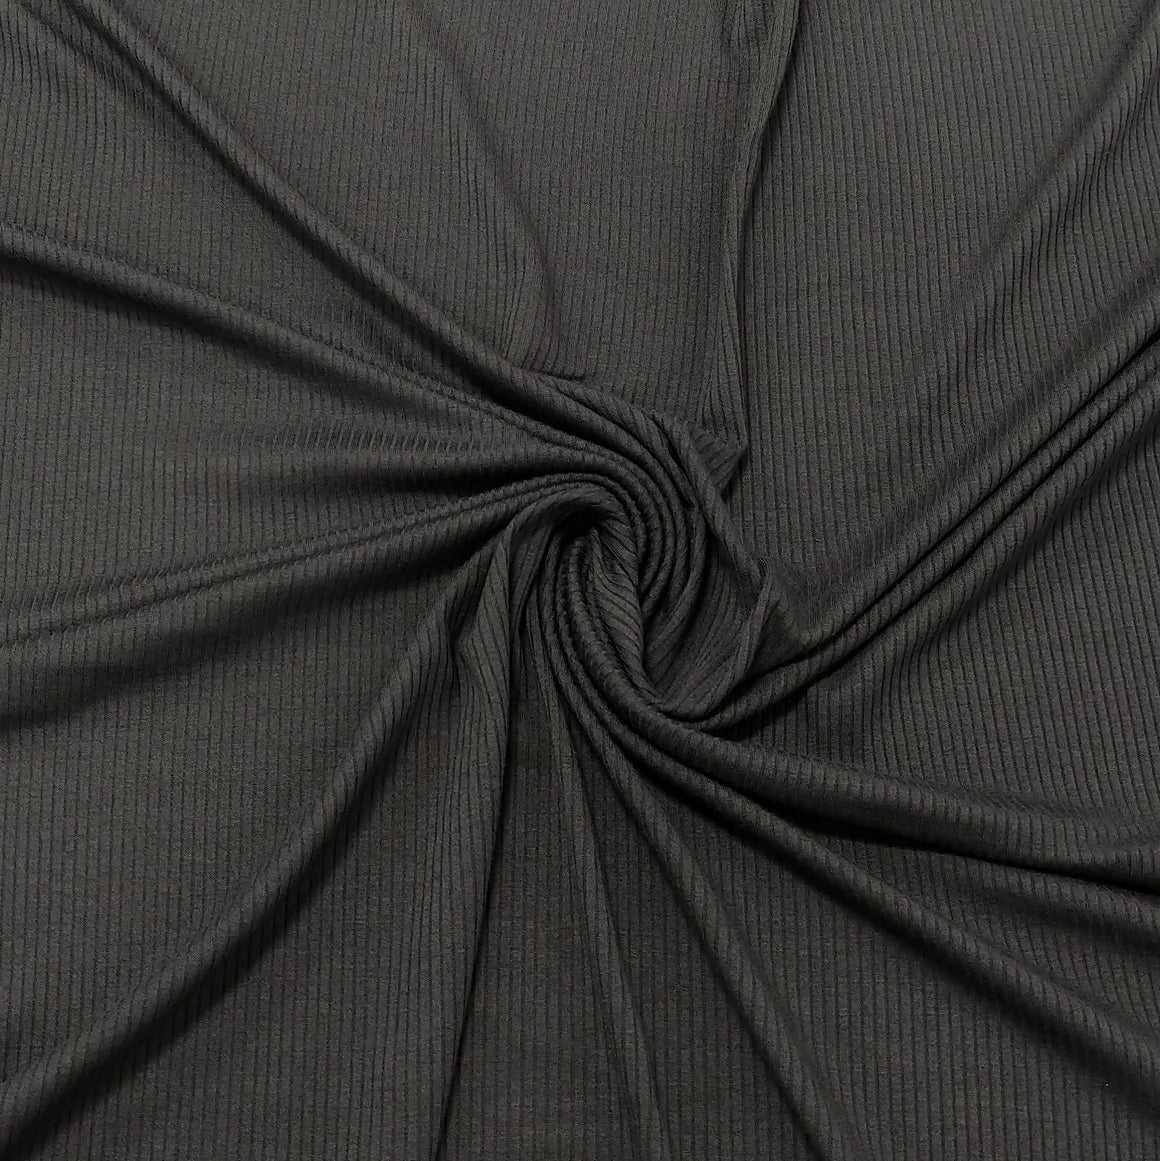 Solid Pavement Grey Tencel Modal Spandex 4 Way Stretch 3x2 Rib Knit - Raspberry Creek Fabrics